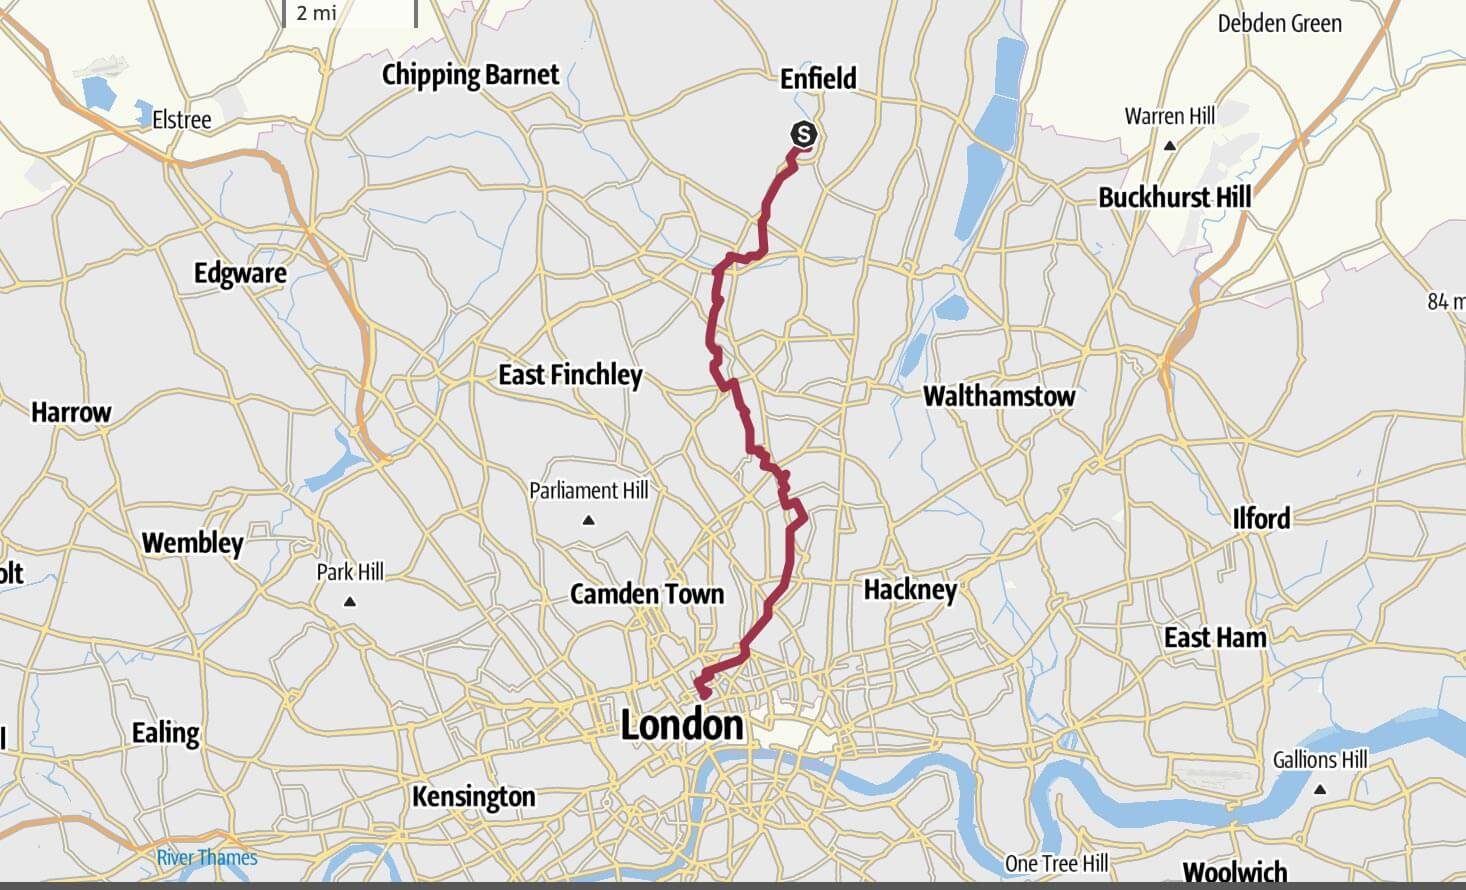 Day 13 - Enfield Forty Hall to GOSH